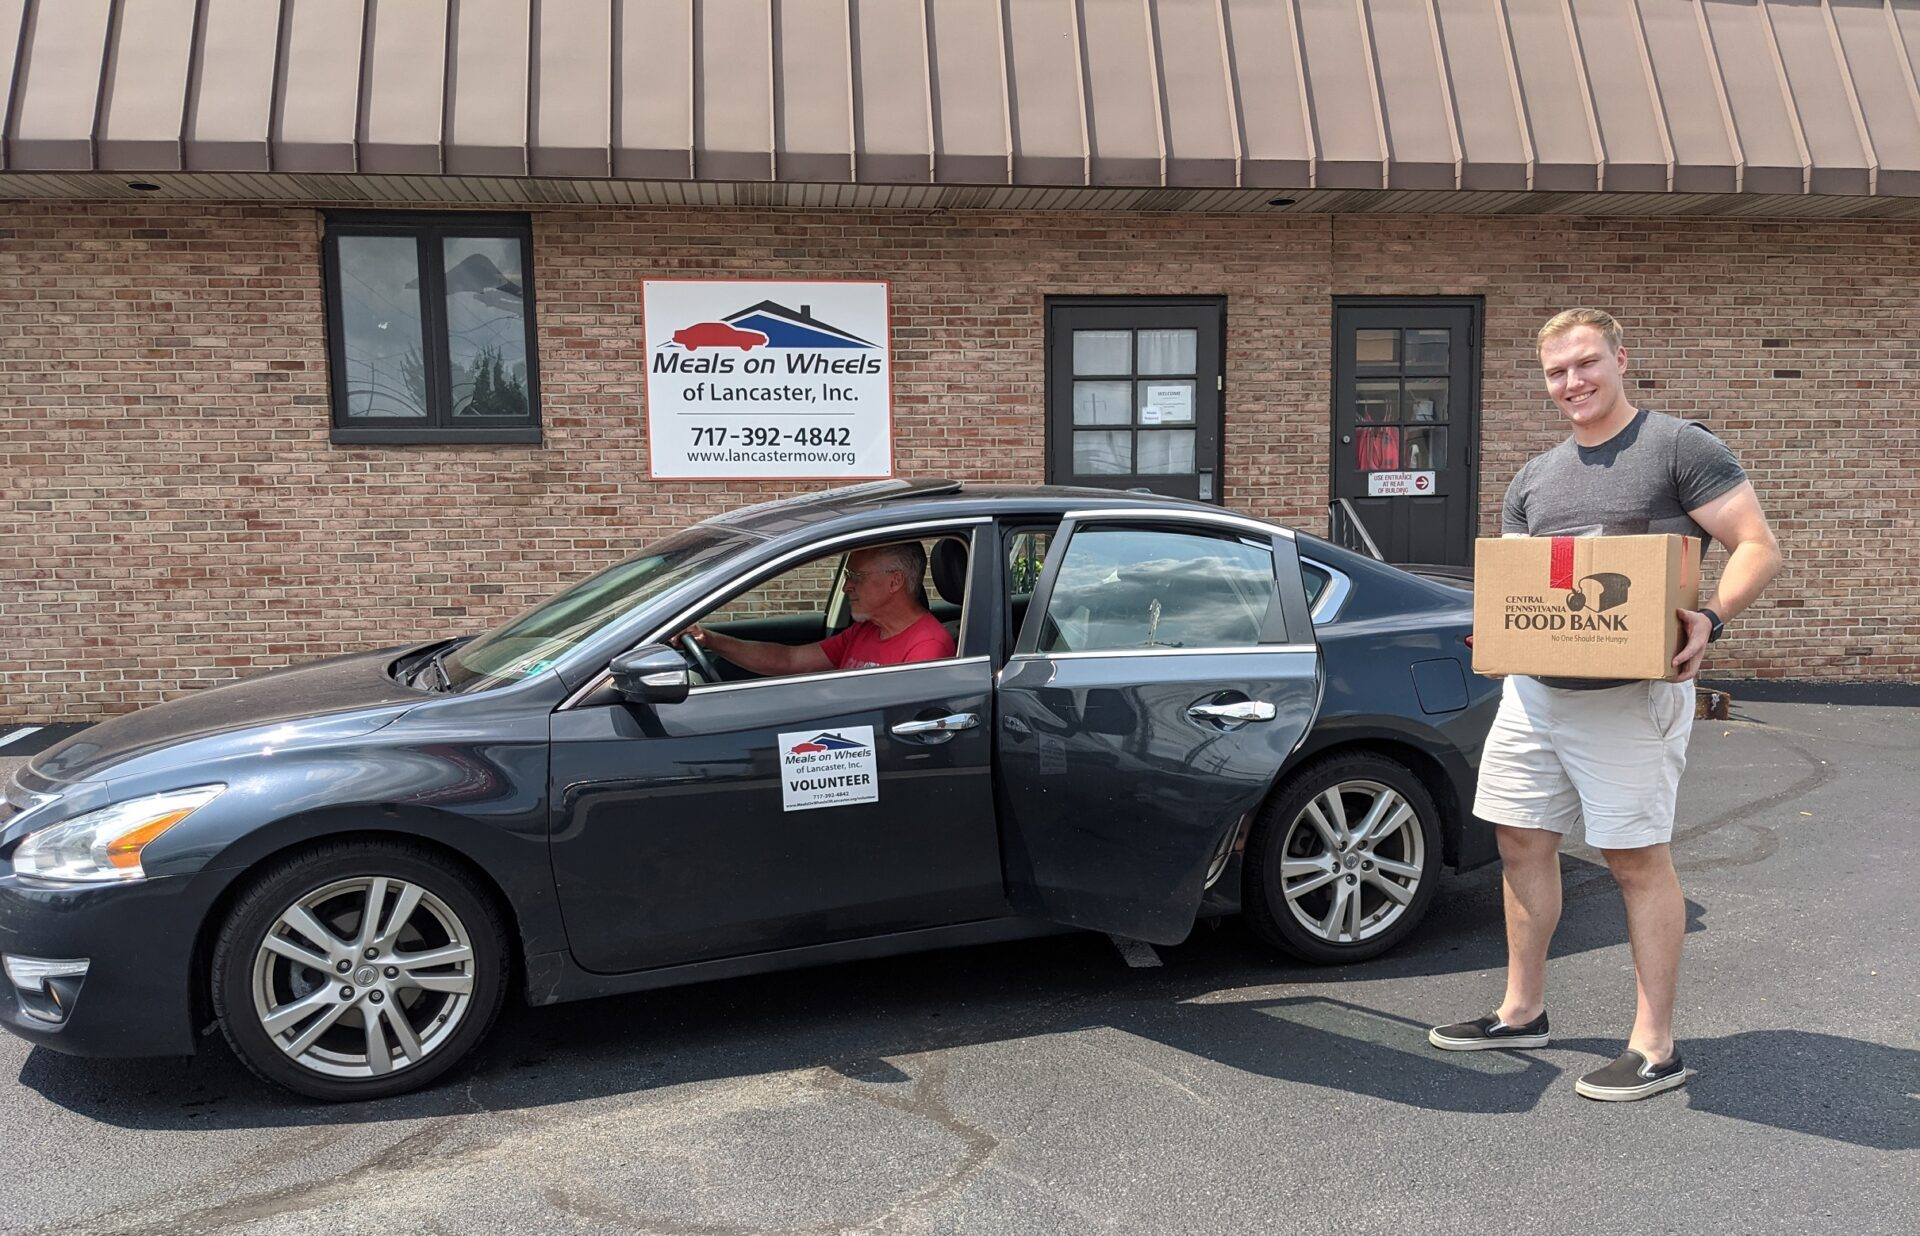 Intern Noah Jordan loads a Senior Food Box into a car driven by Doug Hopwood, Meals on Wheels of Lancaster's director of program and volunteer development, outside the nonprofit's headquarters on Manheim Pike on Thursday, July 22, 2021. (Source: Meals on Wheels of Lancaster)